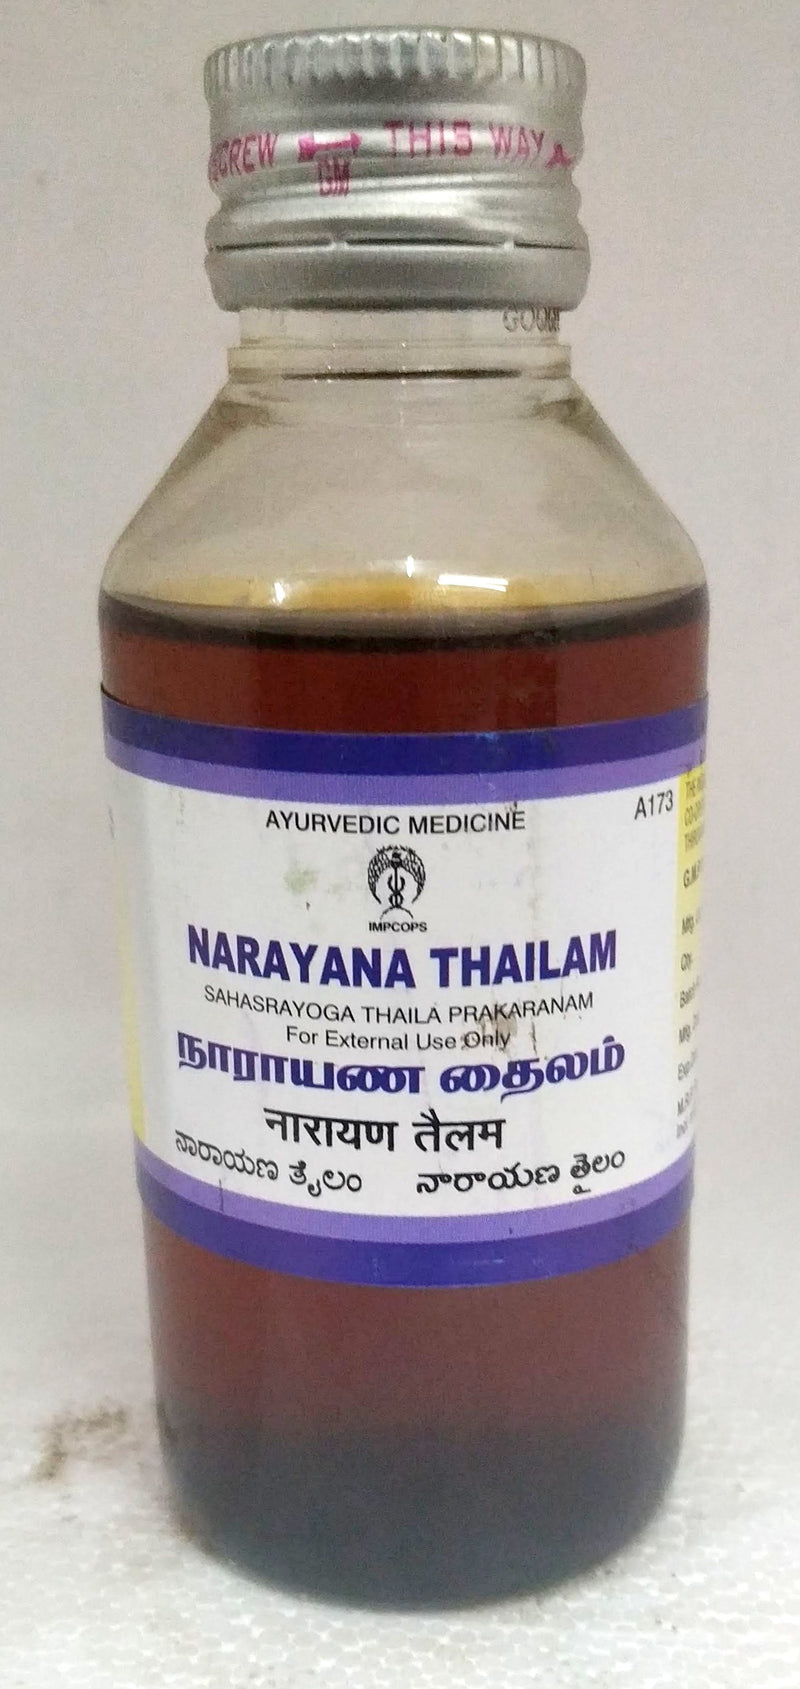 Impcops Narayana Thailam 100ml (Ayurvedic) - Ayush Care